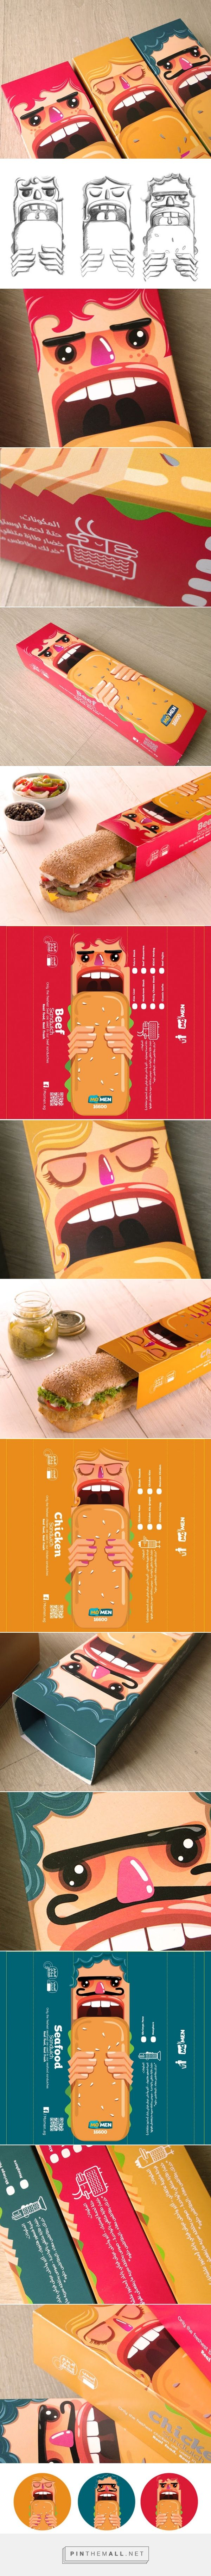 MOMEN ‪#‎Sandwich‬ ‪#‎packaging‬ designed by Mohamed Kamel - http://www.packagingoftheworld.com/2015/04/momen-sandwich.html